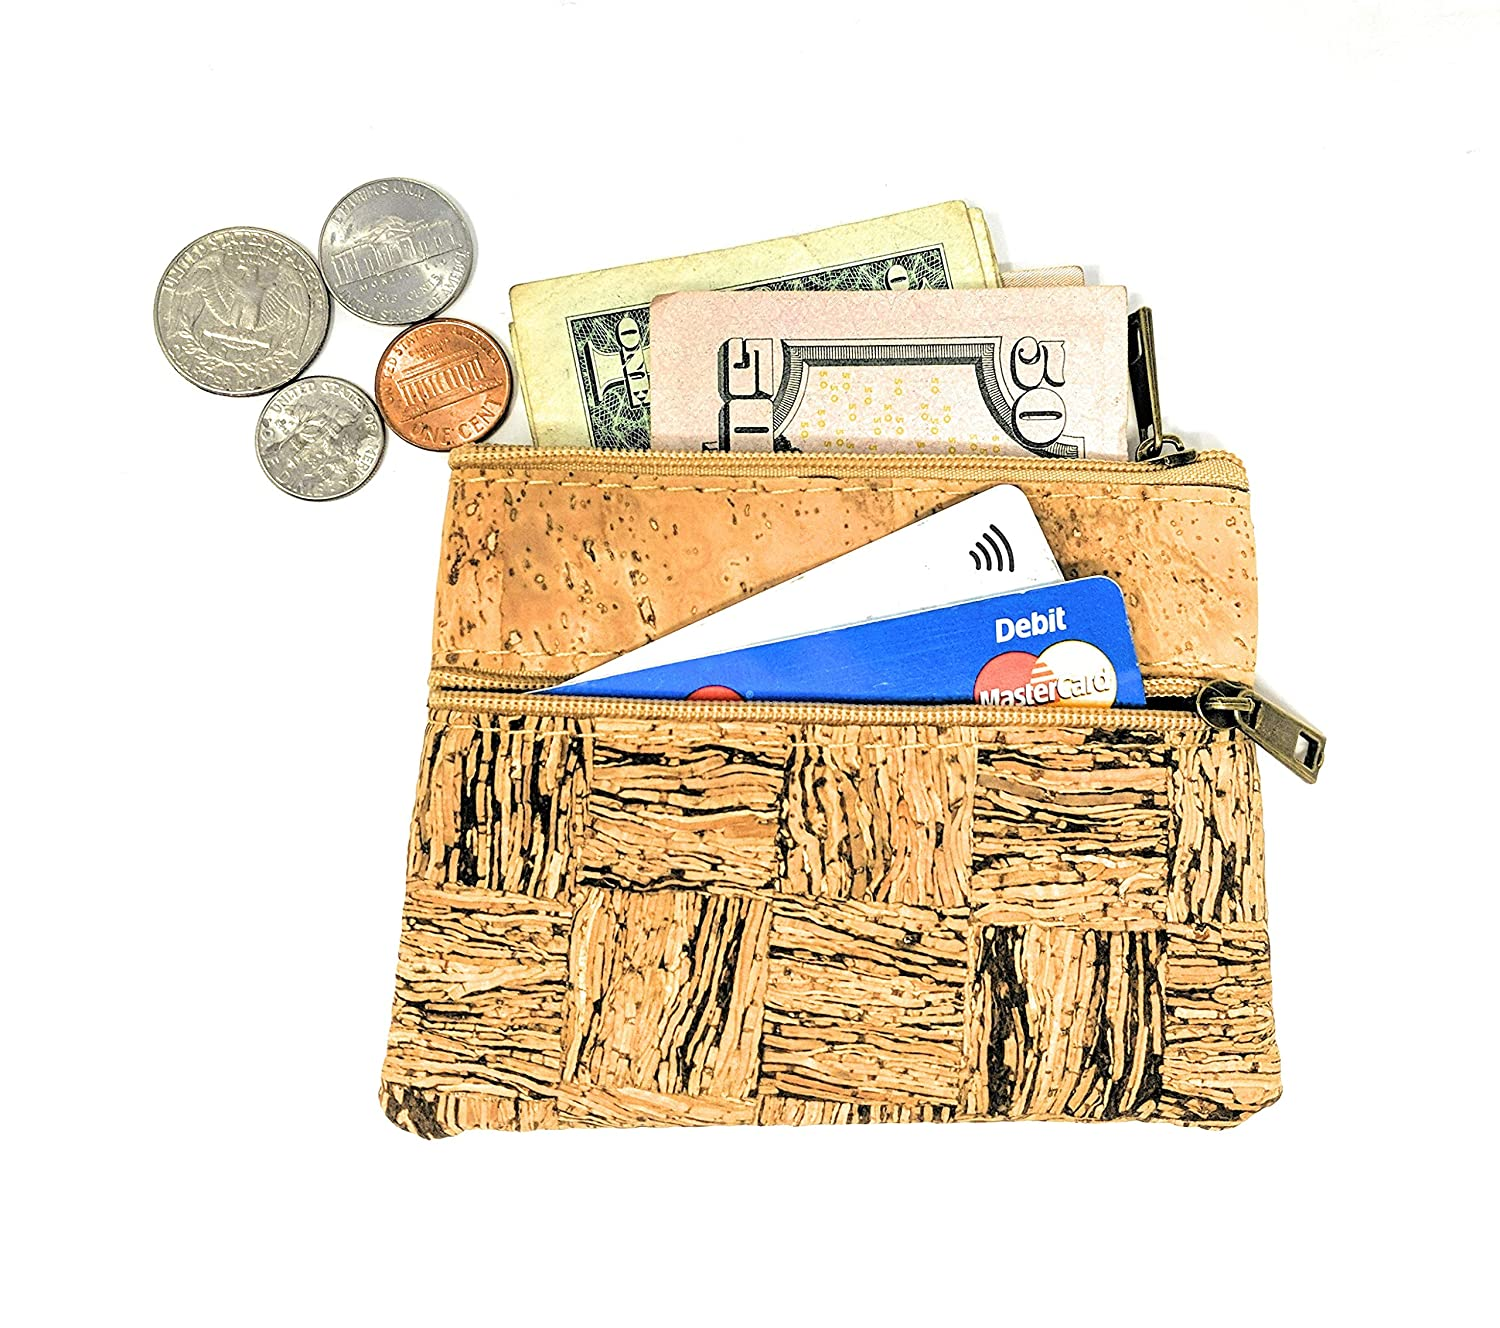 Coin Purse for Women - Handmade in Portugal from Cork Leather - Cork Street Zippered Small Change Pouch